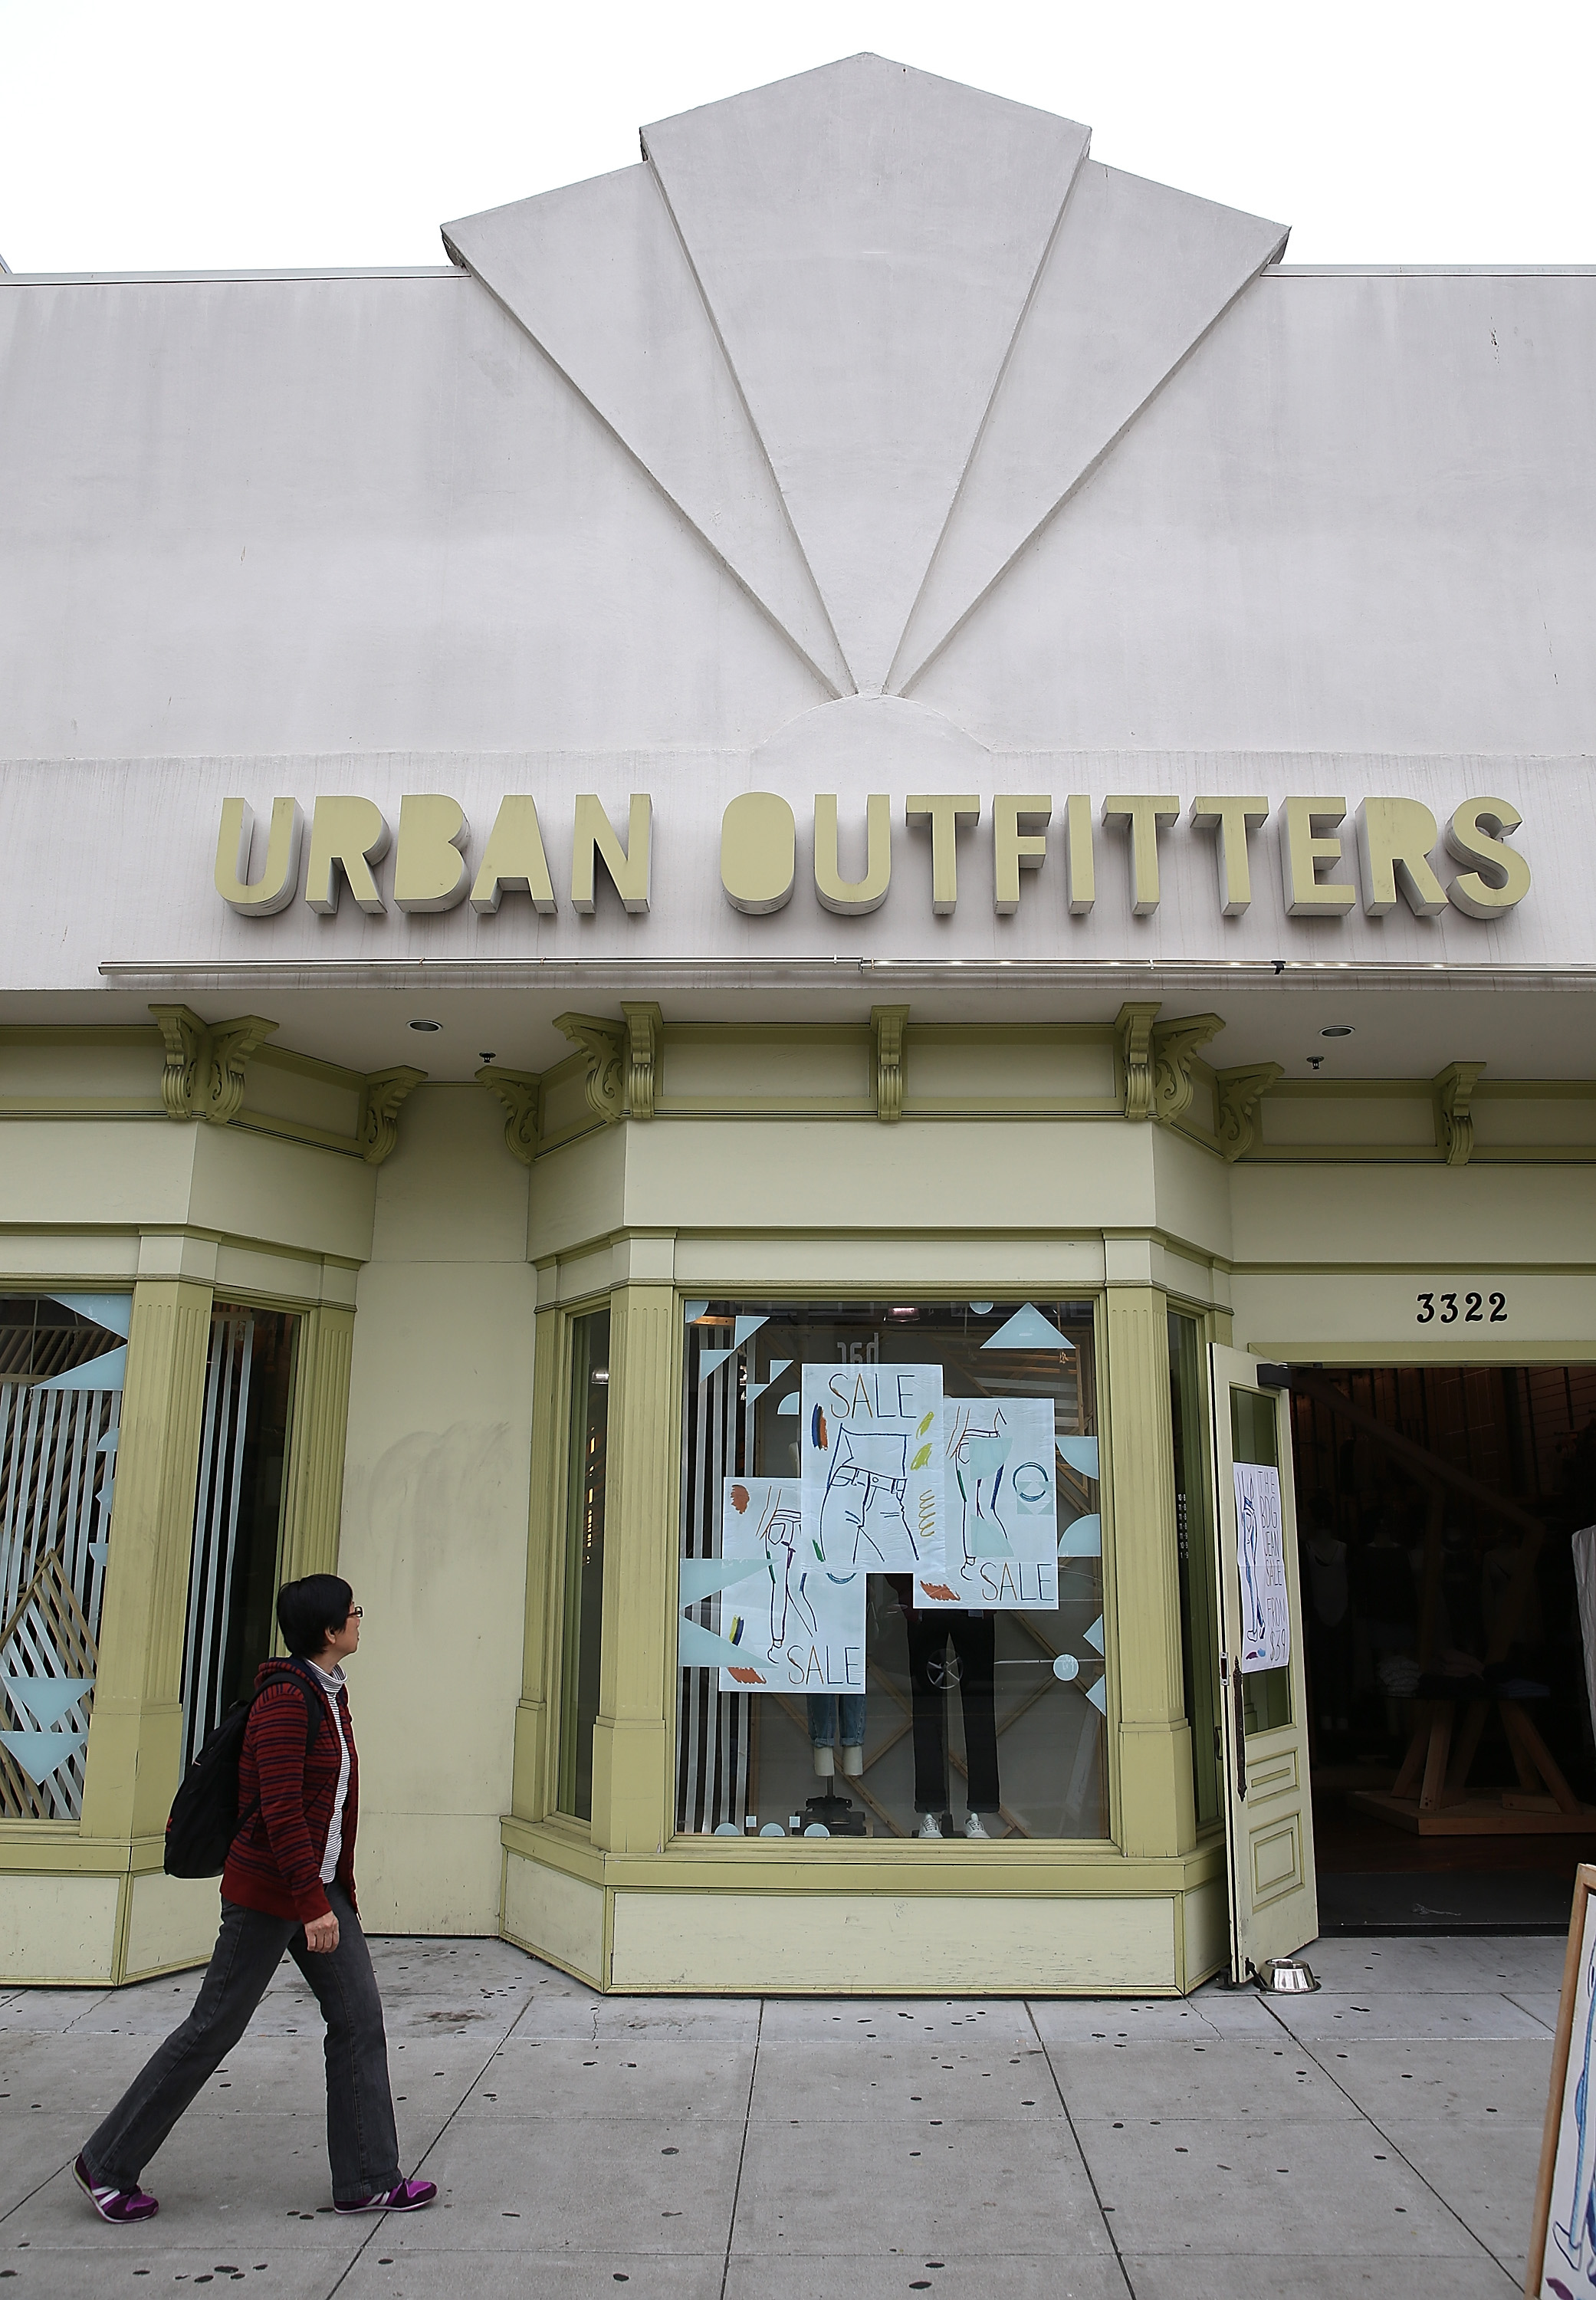 Urban Outfitters Asks Its Employees to Work for Free as 'Team Building'